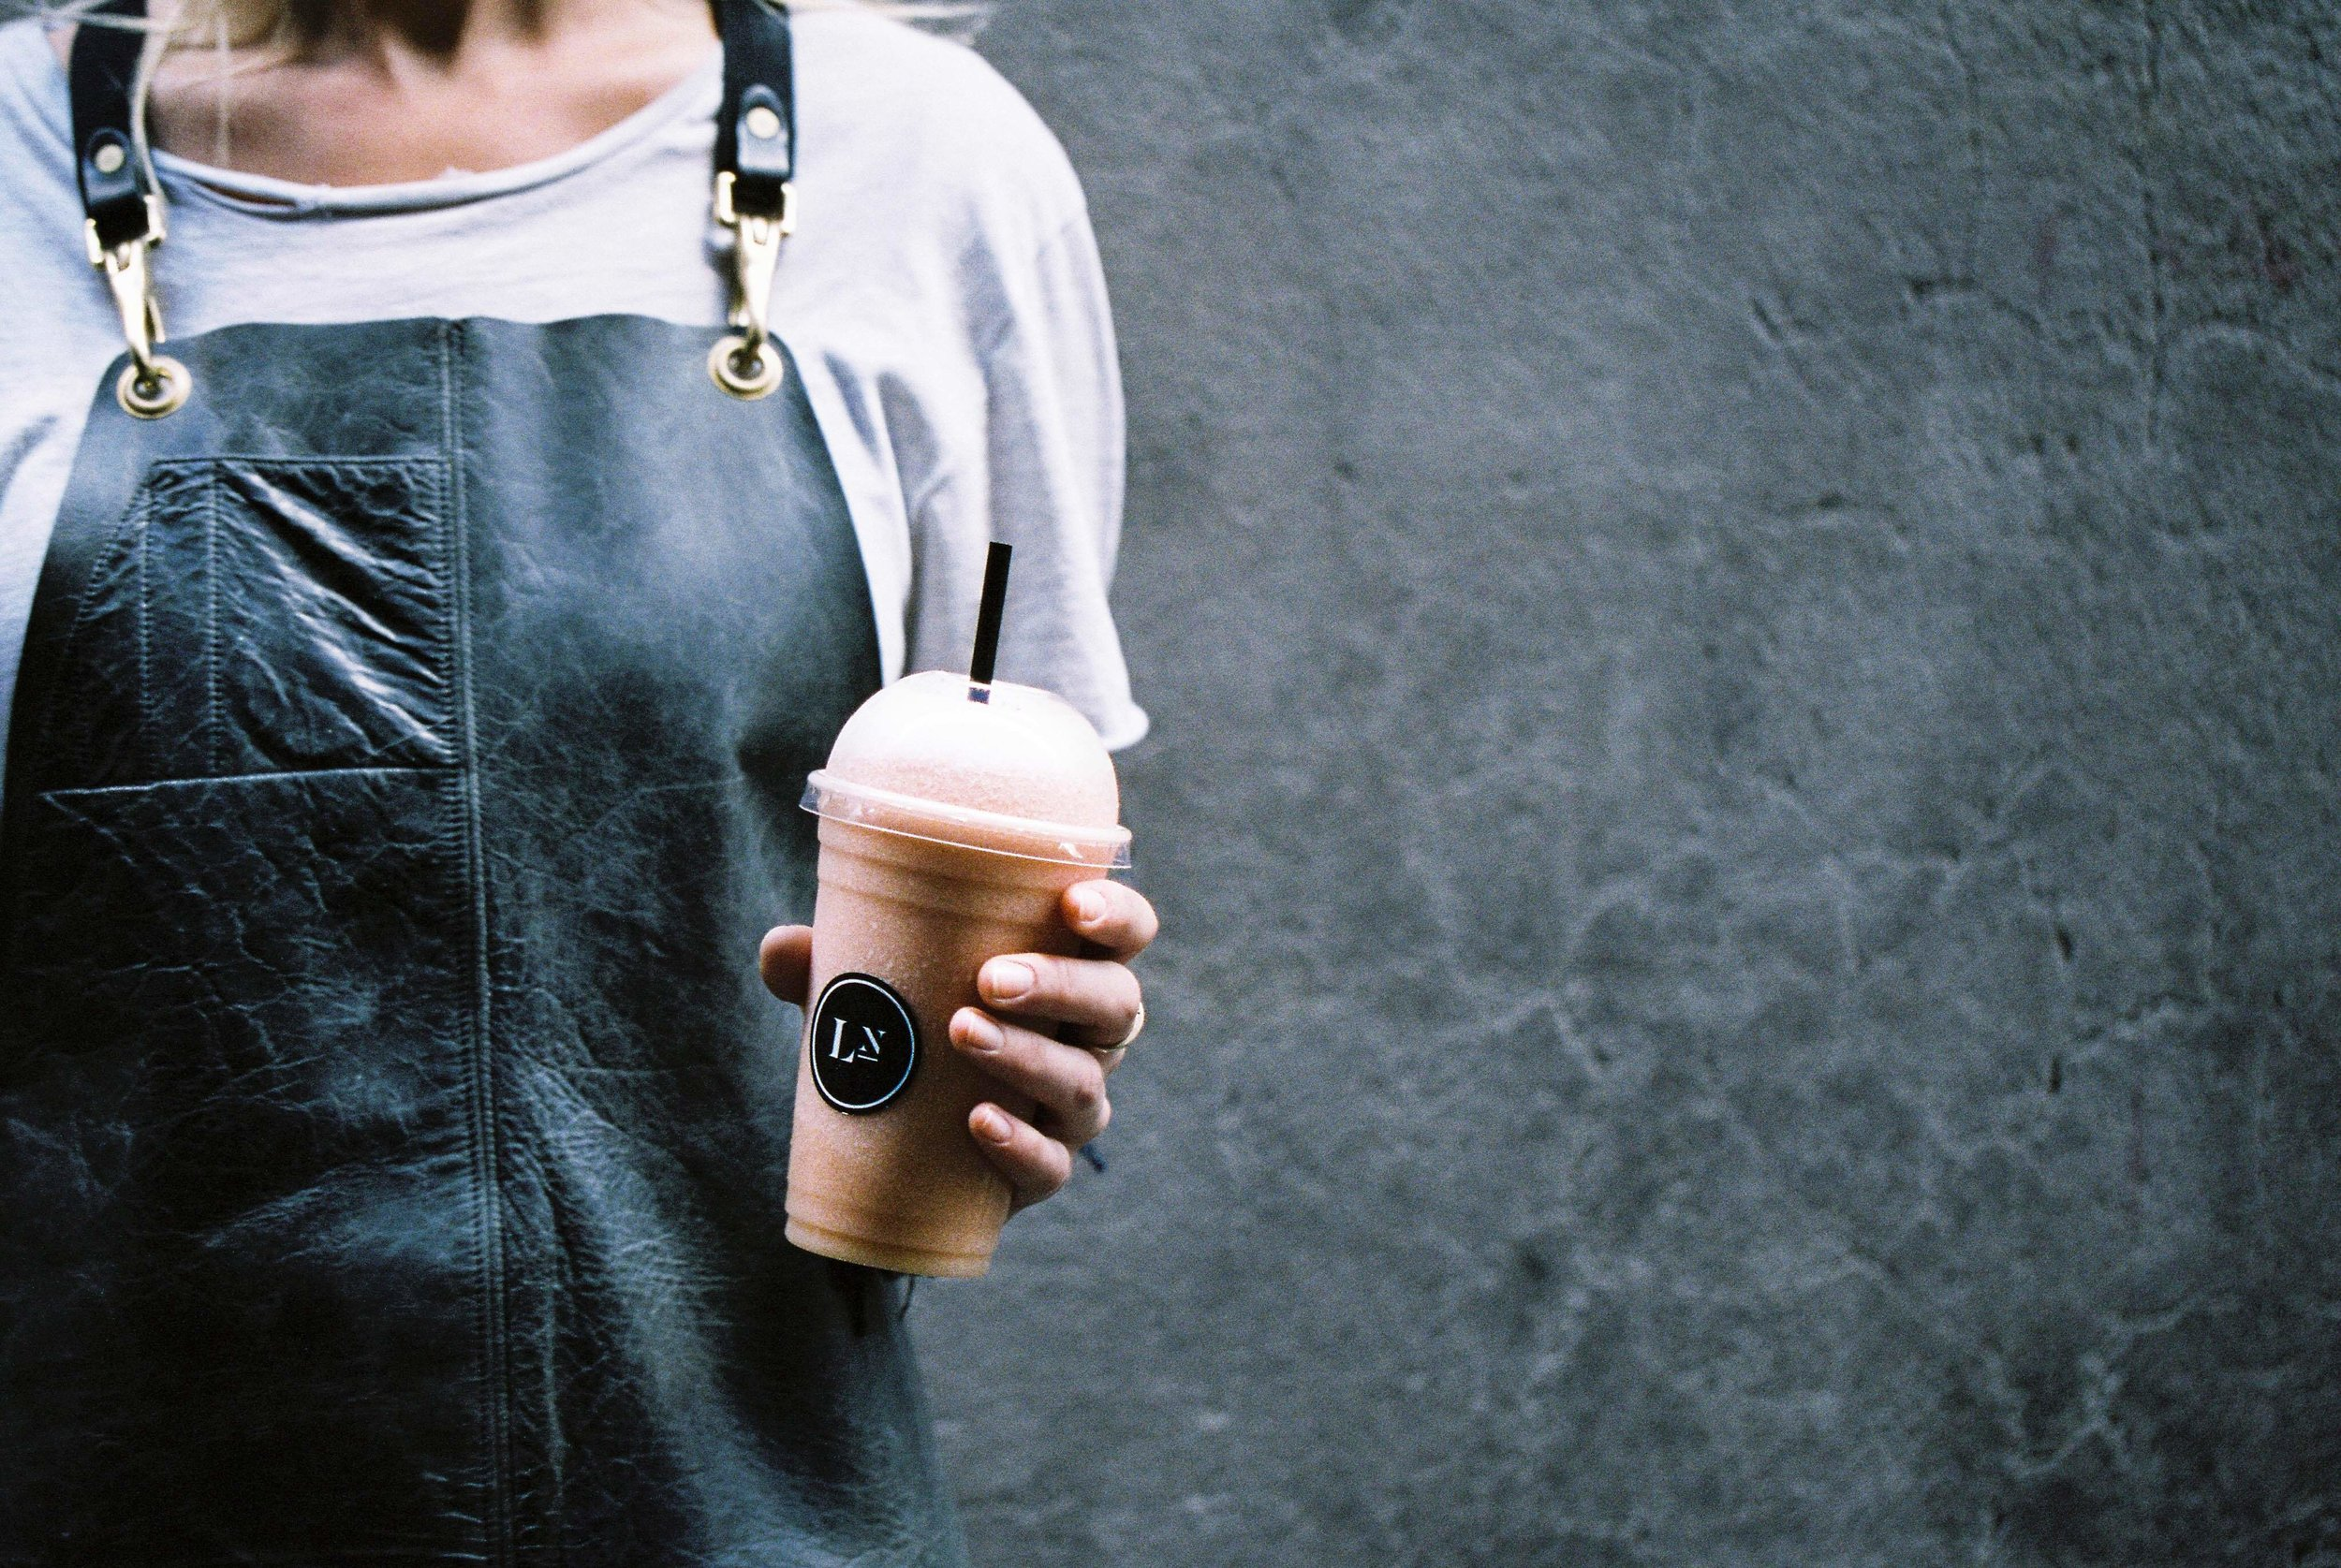 Fresh and made-to-order smoothies from Laneway Greens - an offer squeezed into a nook in Flinders Lane, Melbourne for all the CBD workers to enjoy